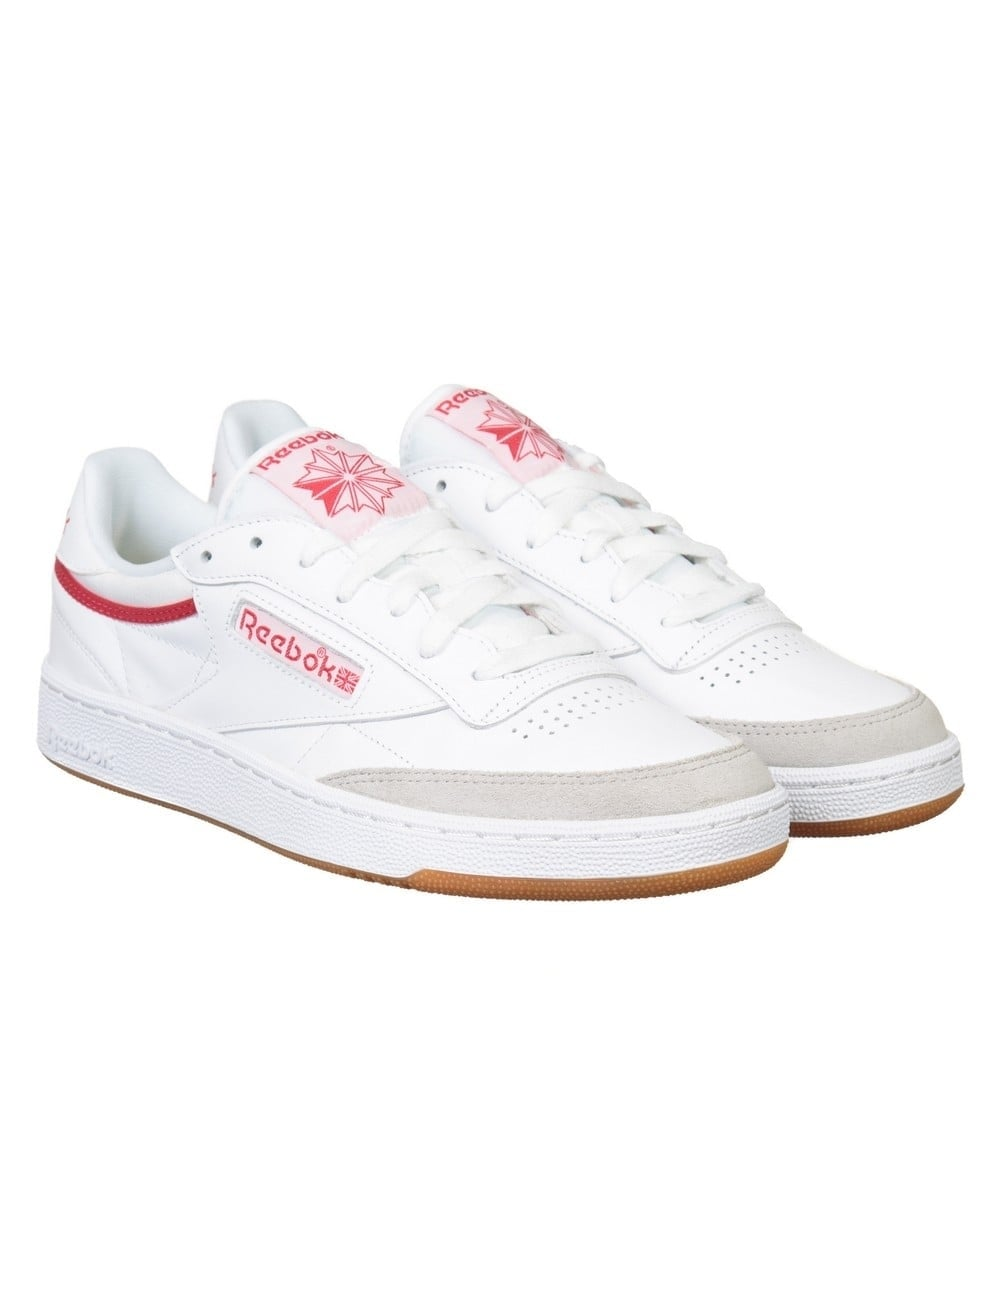 6cdbae4bd0b361 Reebok Club C 85 CP Shoes - White Grey Red - Footwear from Fat ...